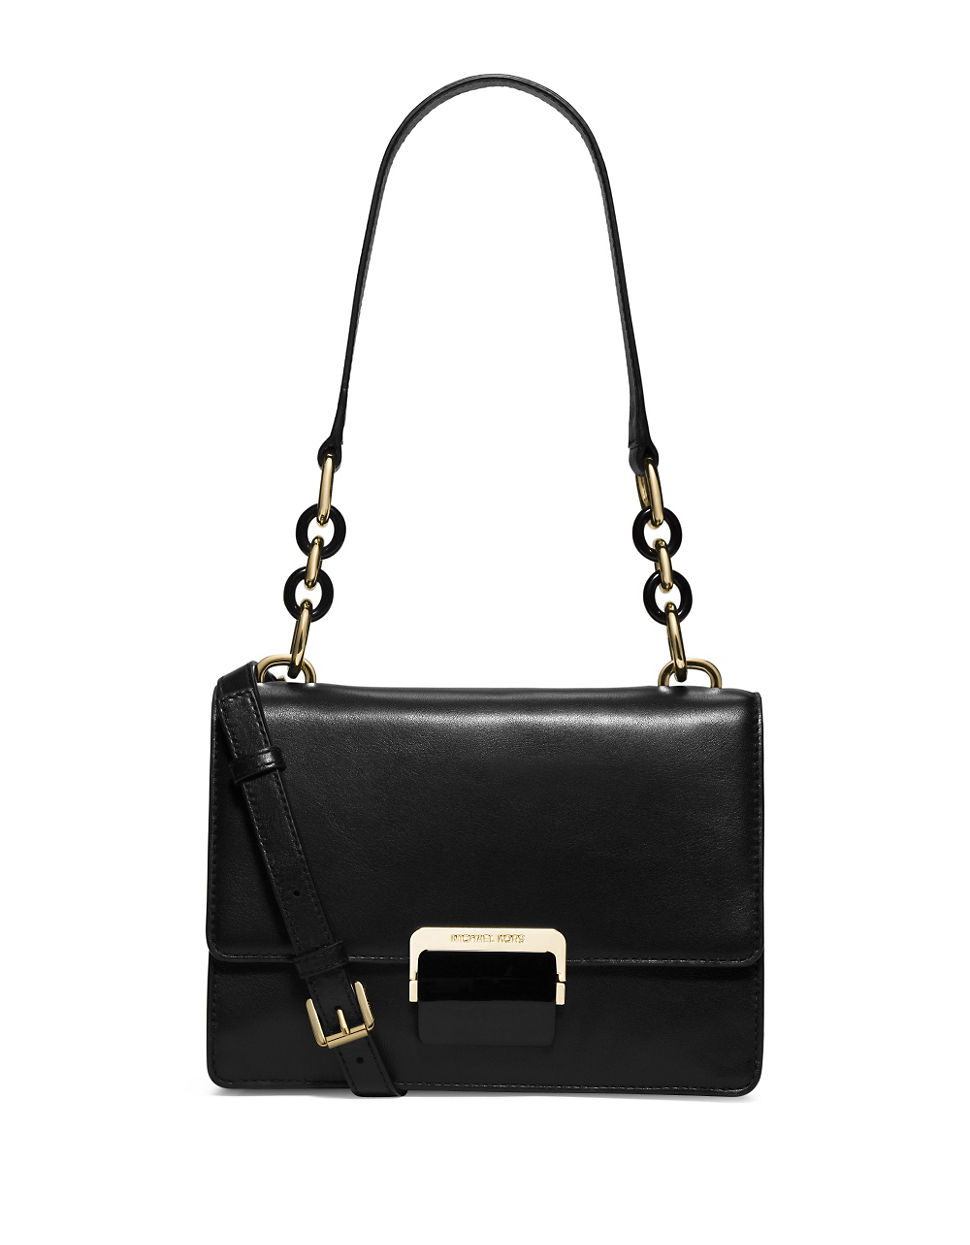 michael michael kors cynthia leather shoulder bag in black lyst. Black Bedroom Furniture Sets. Home Design Ideas